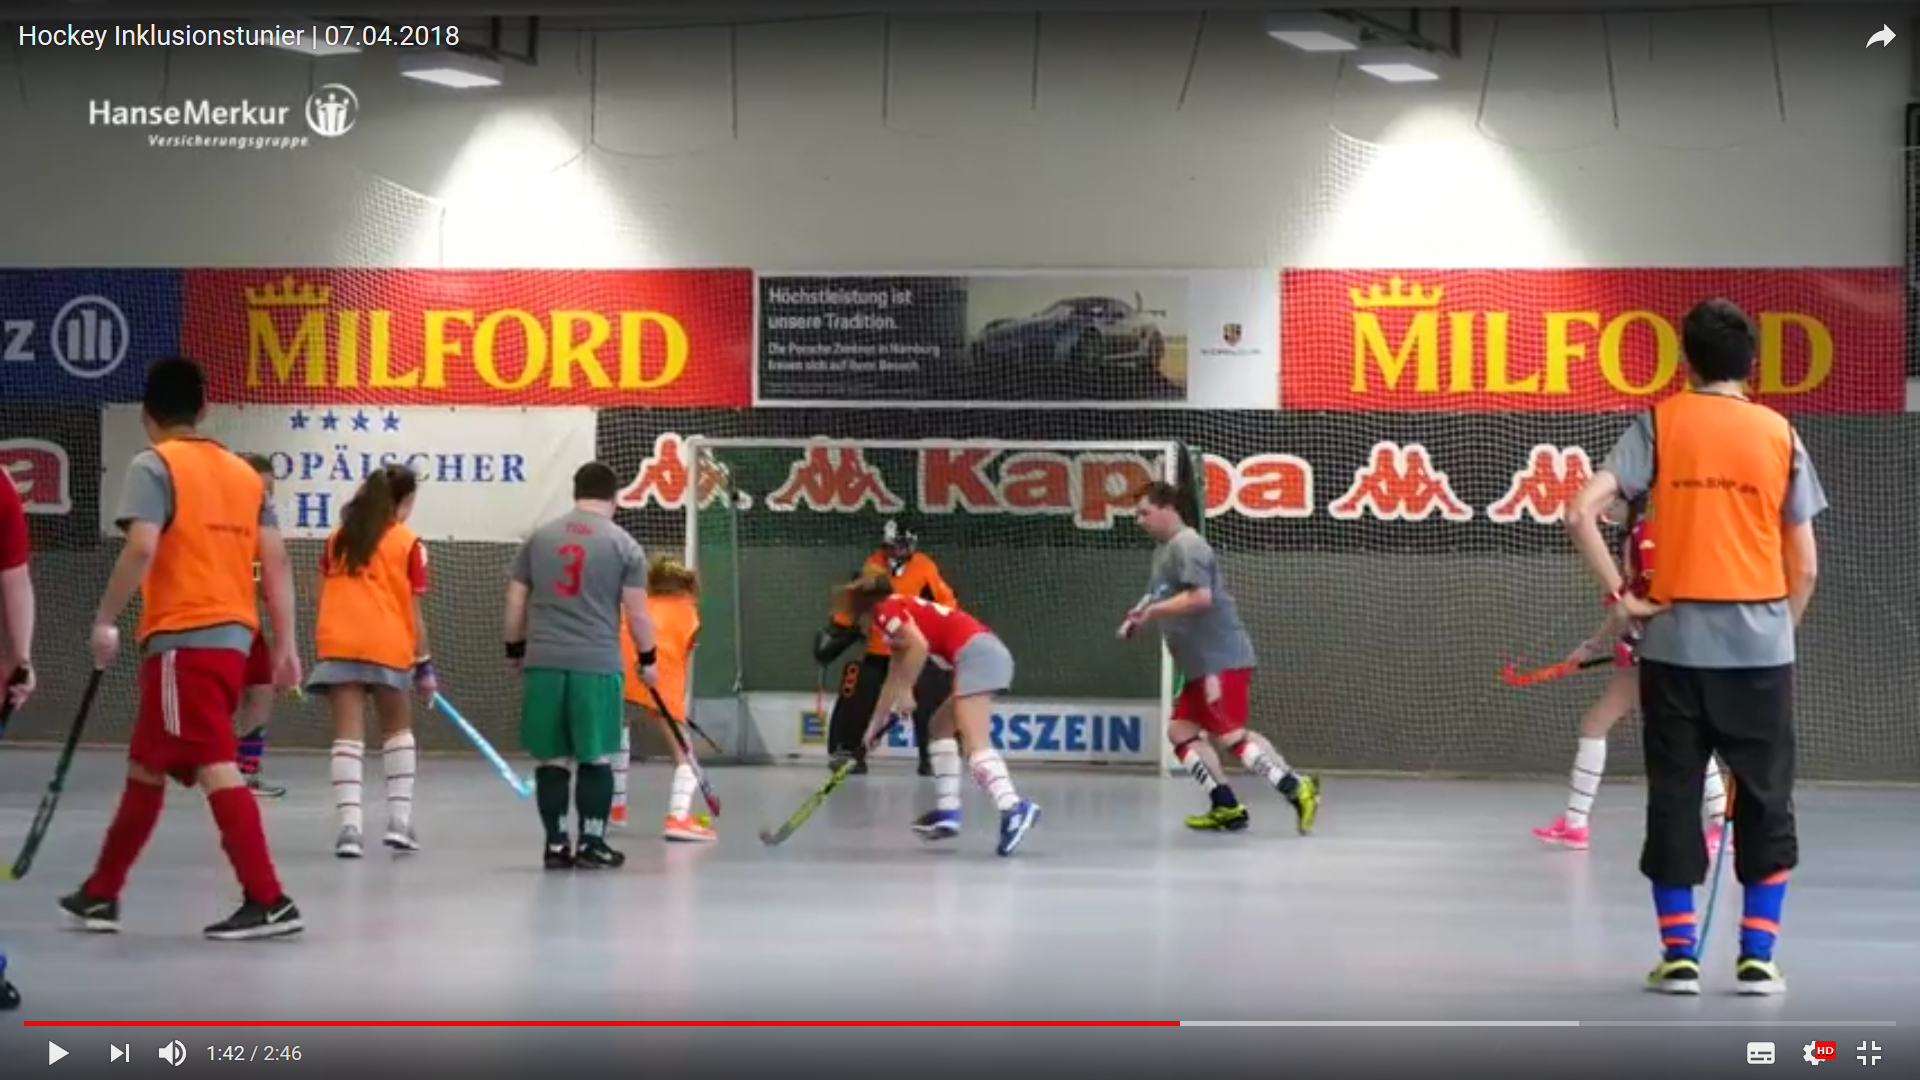 Hockey-Spieler in Aktion